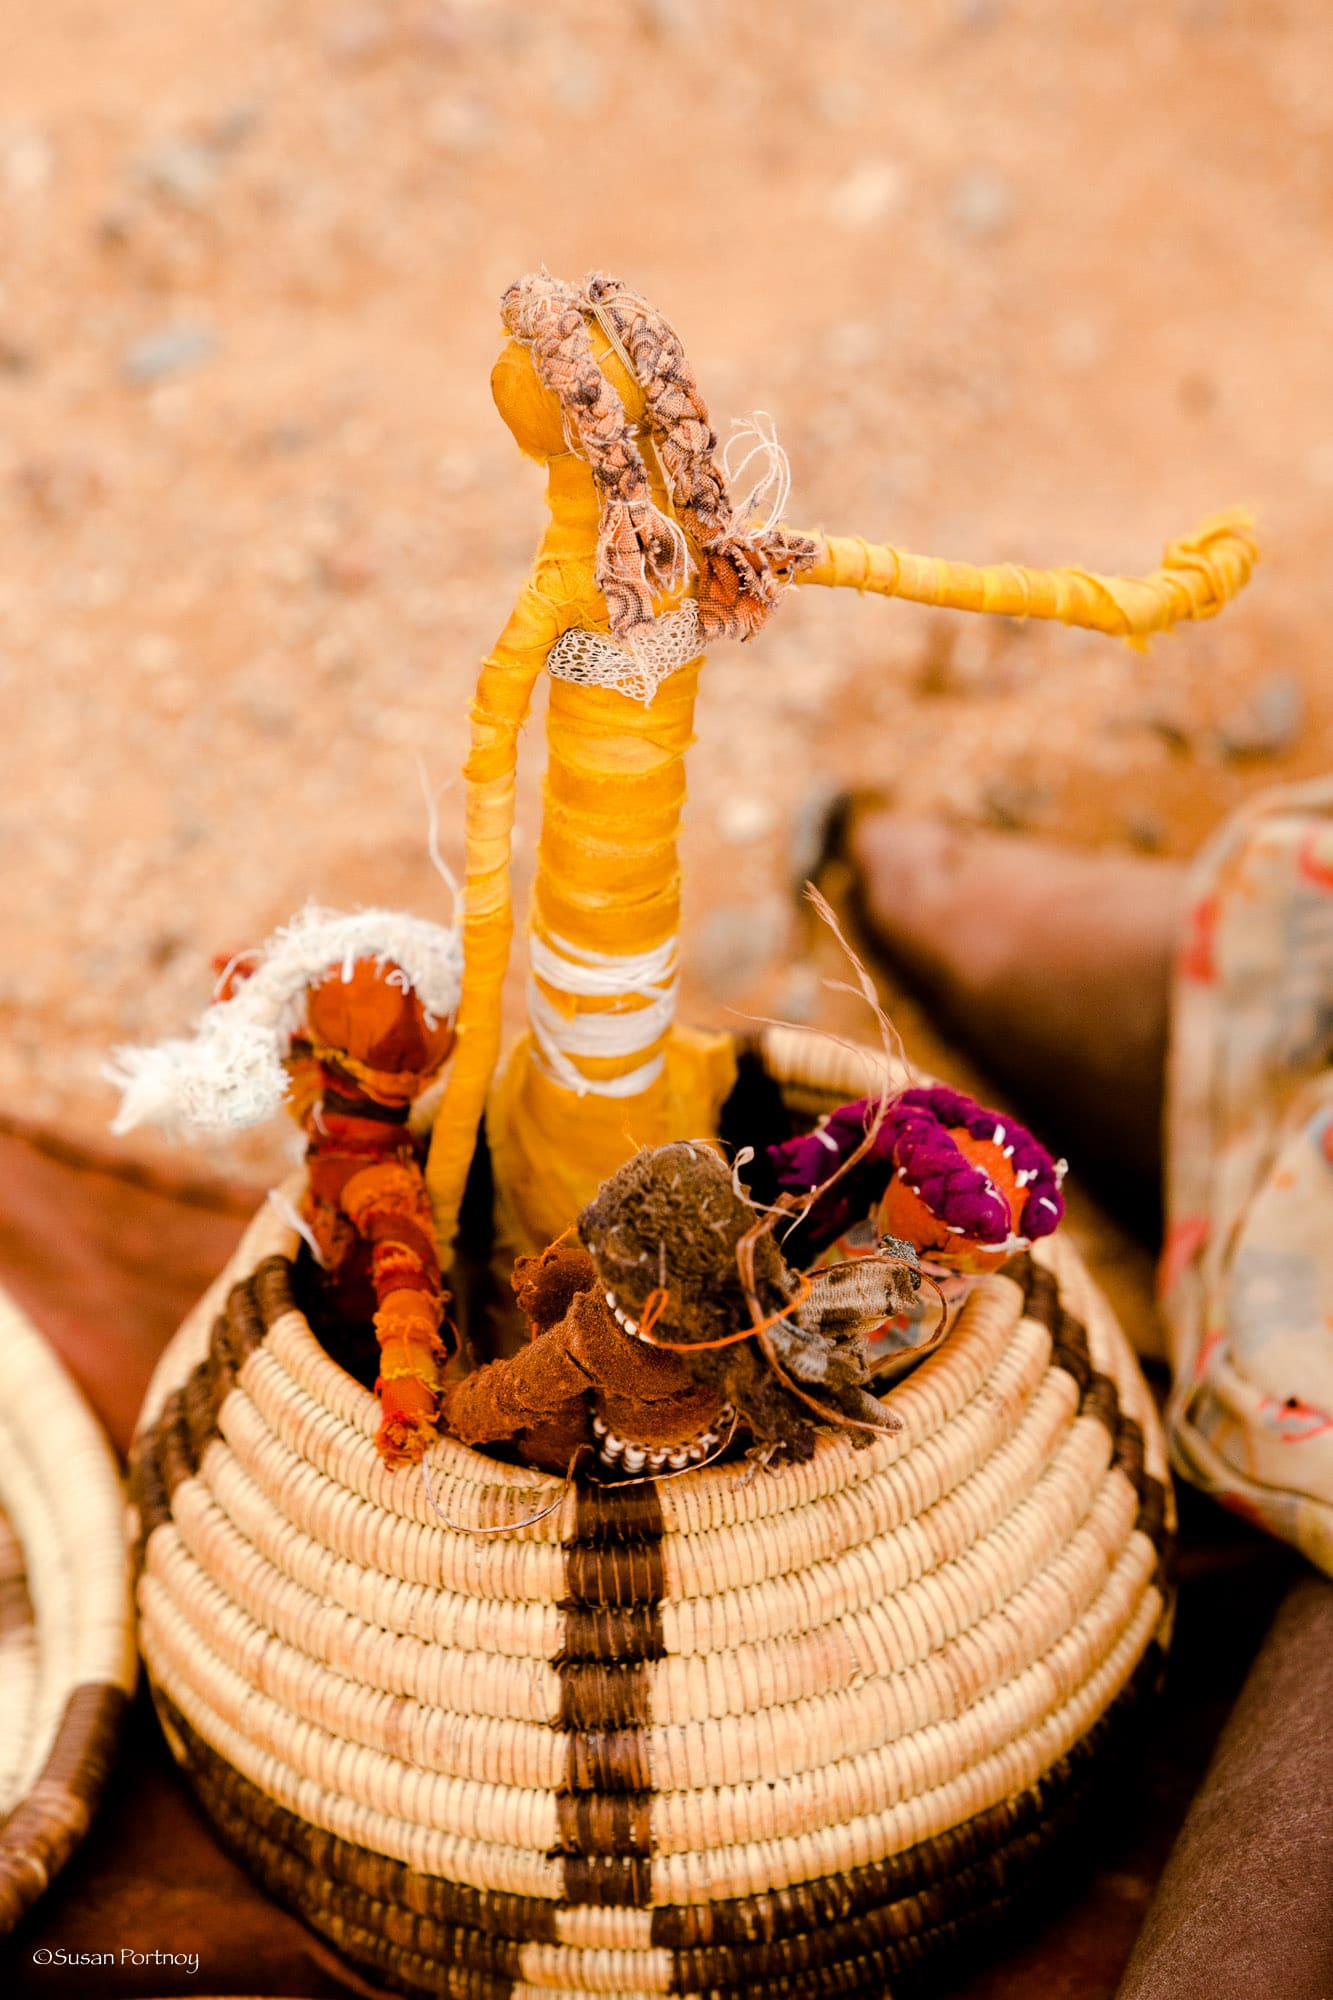 Little handmade string dolls for sale.. see the Himba doll I purchased in my ONE photo series (Link at the top of the page)